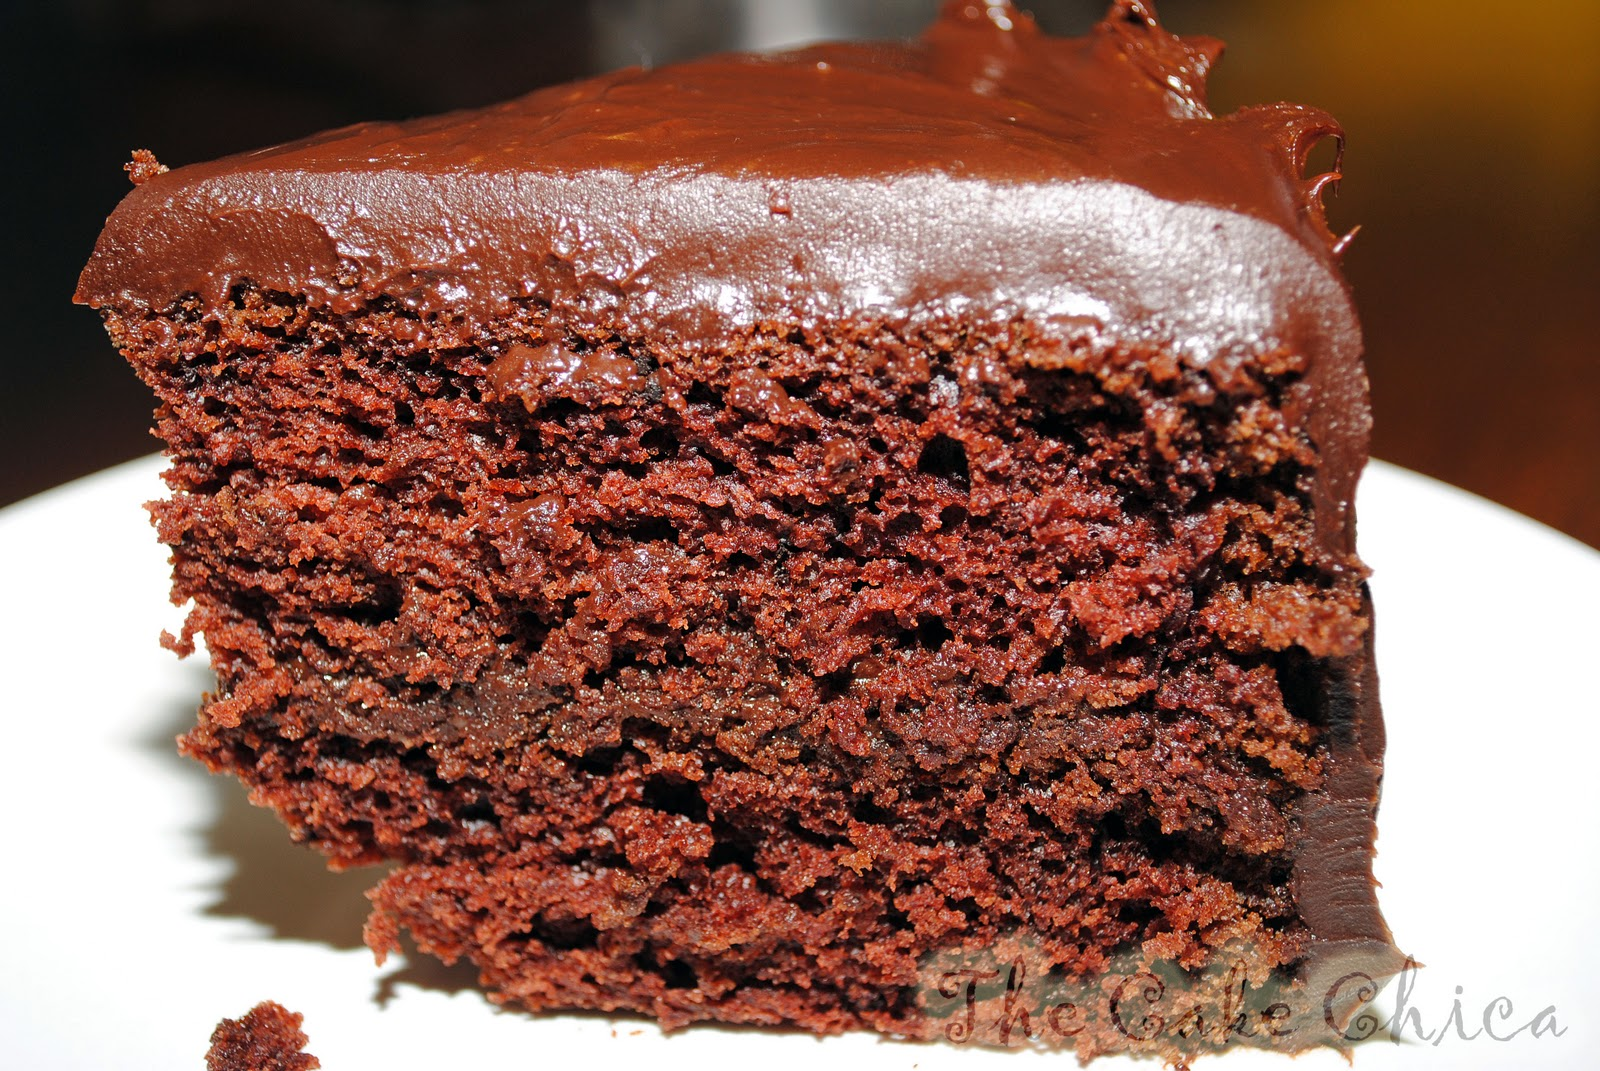 Old Fashioned Sour Cream Chocolate Fudge Cake With Icing Recipe